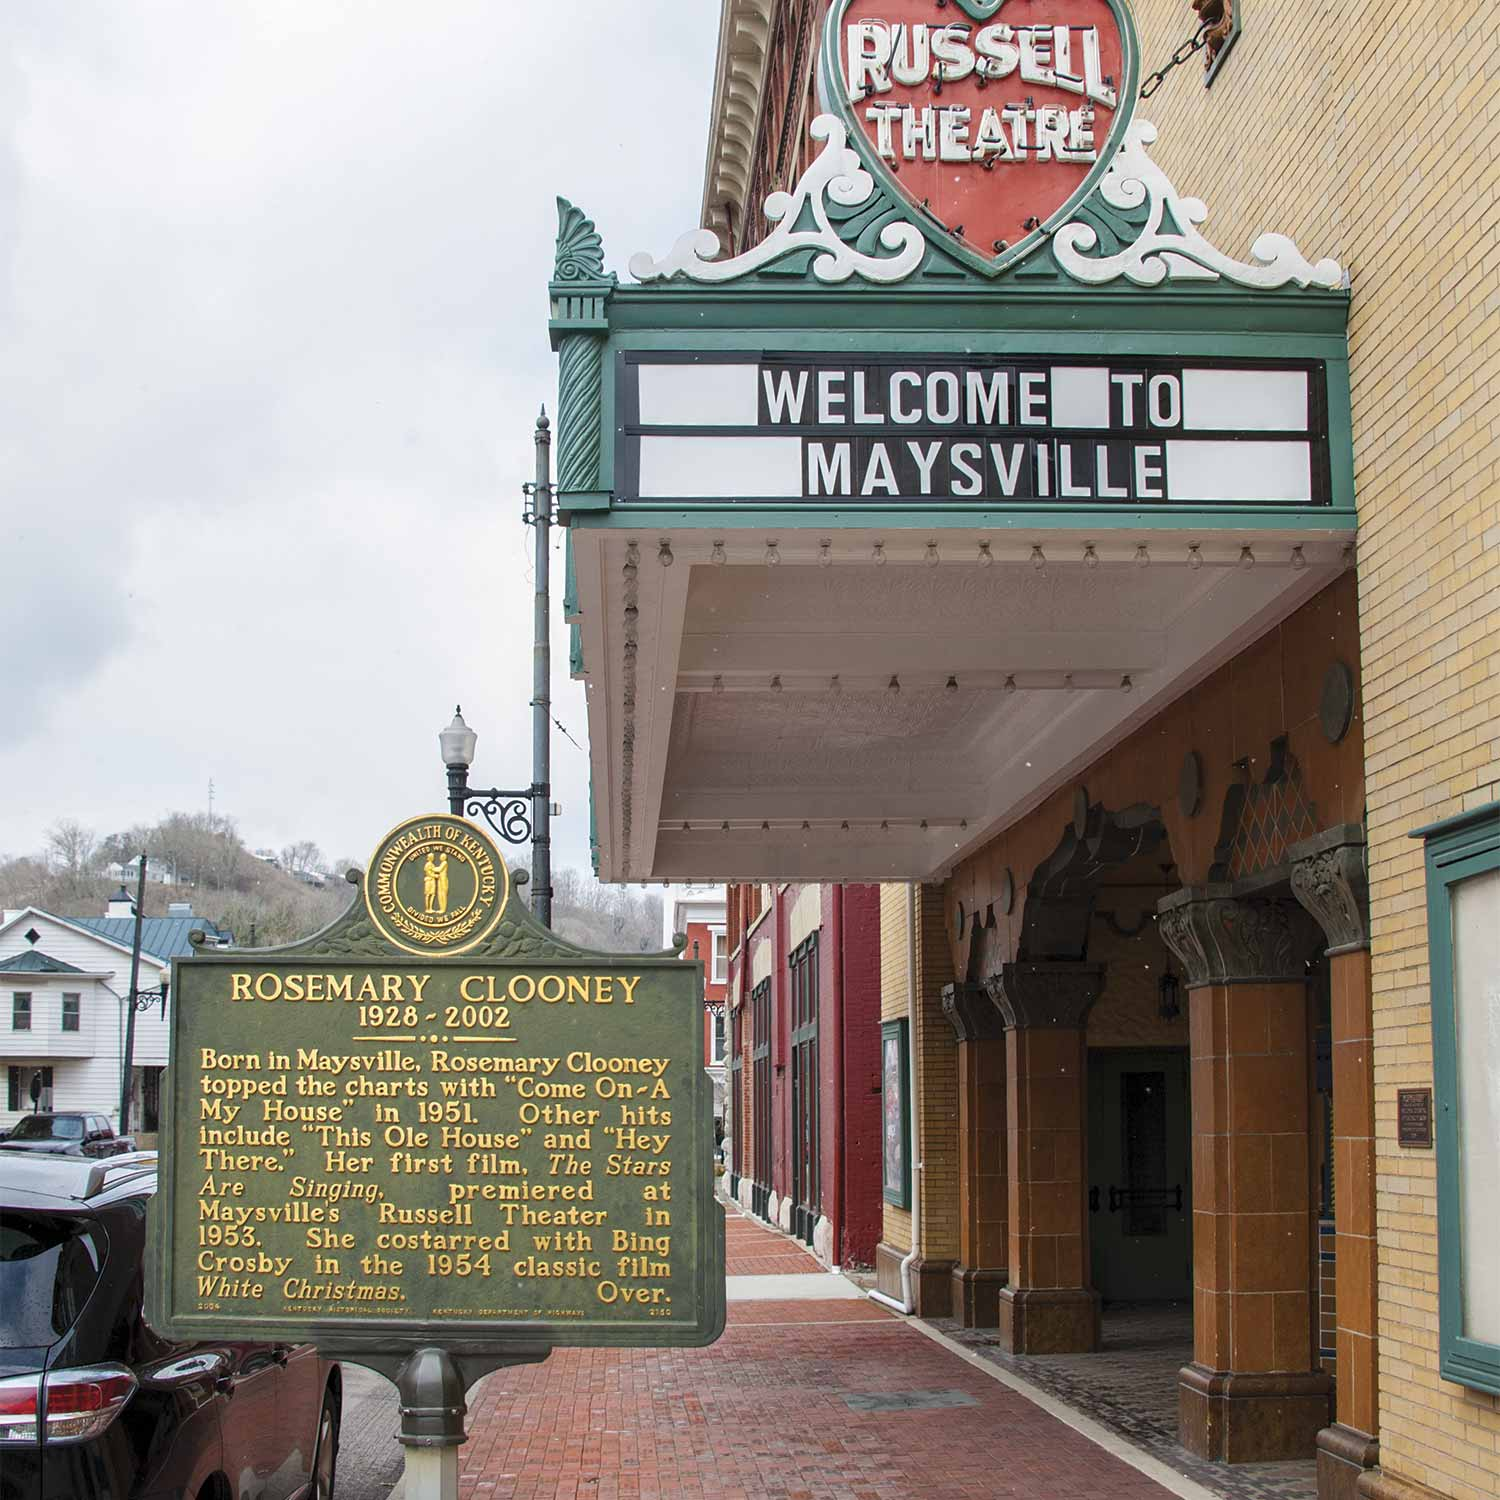 "Maysville is famous for being the birthplace of actress/singer Rosemary Clooney. The Russell Theater in Maysville held the world premiere of Clooney's movie, ""The Stars Were Singing"" in 1953. (Photo by Jim Robertson)"